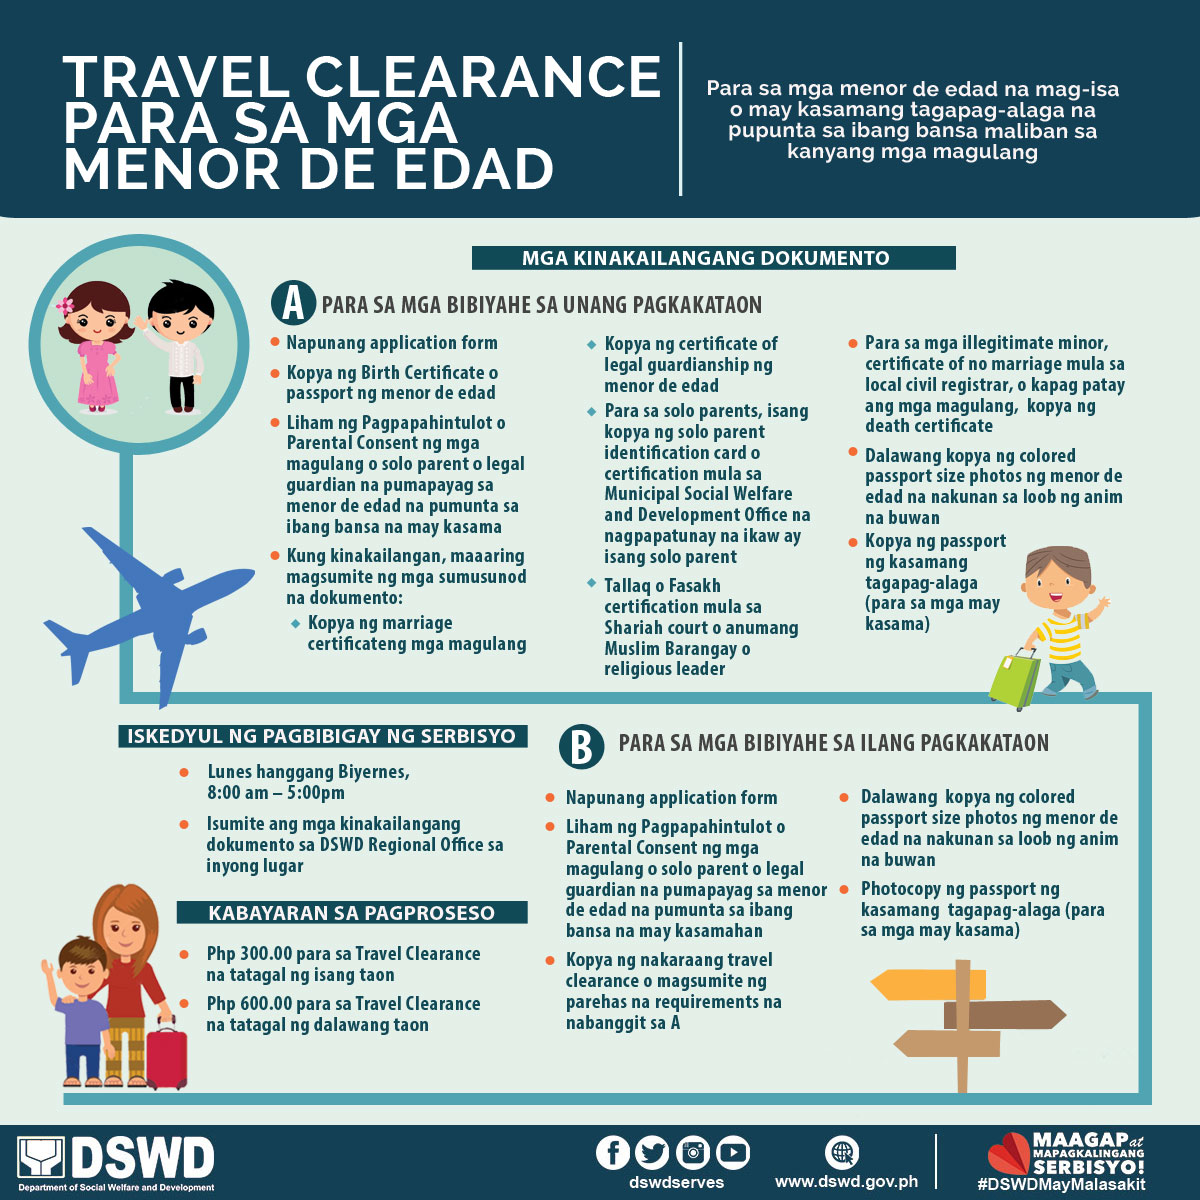 Travel Clearance for Minors